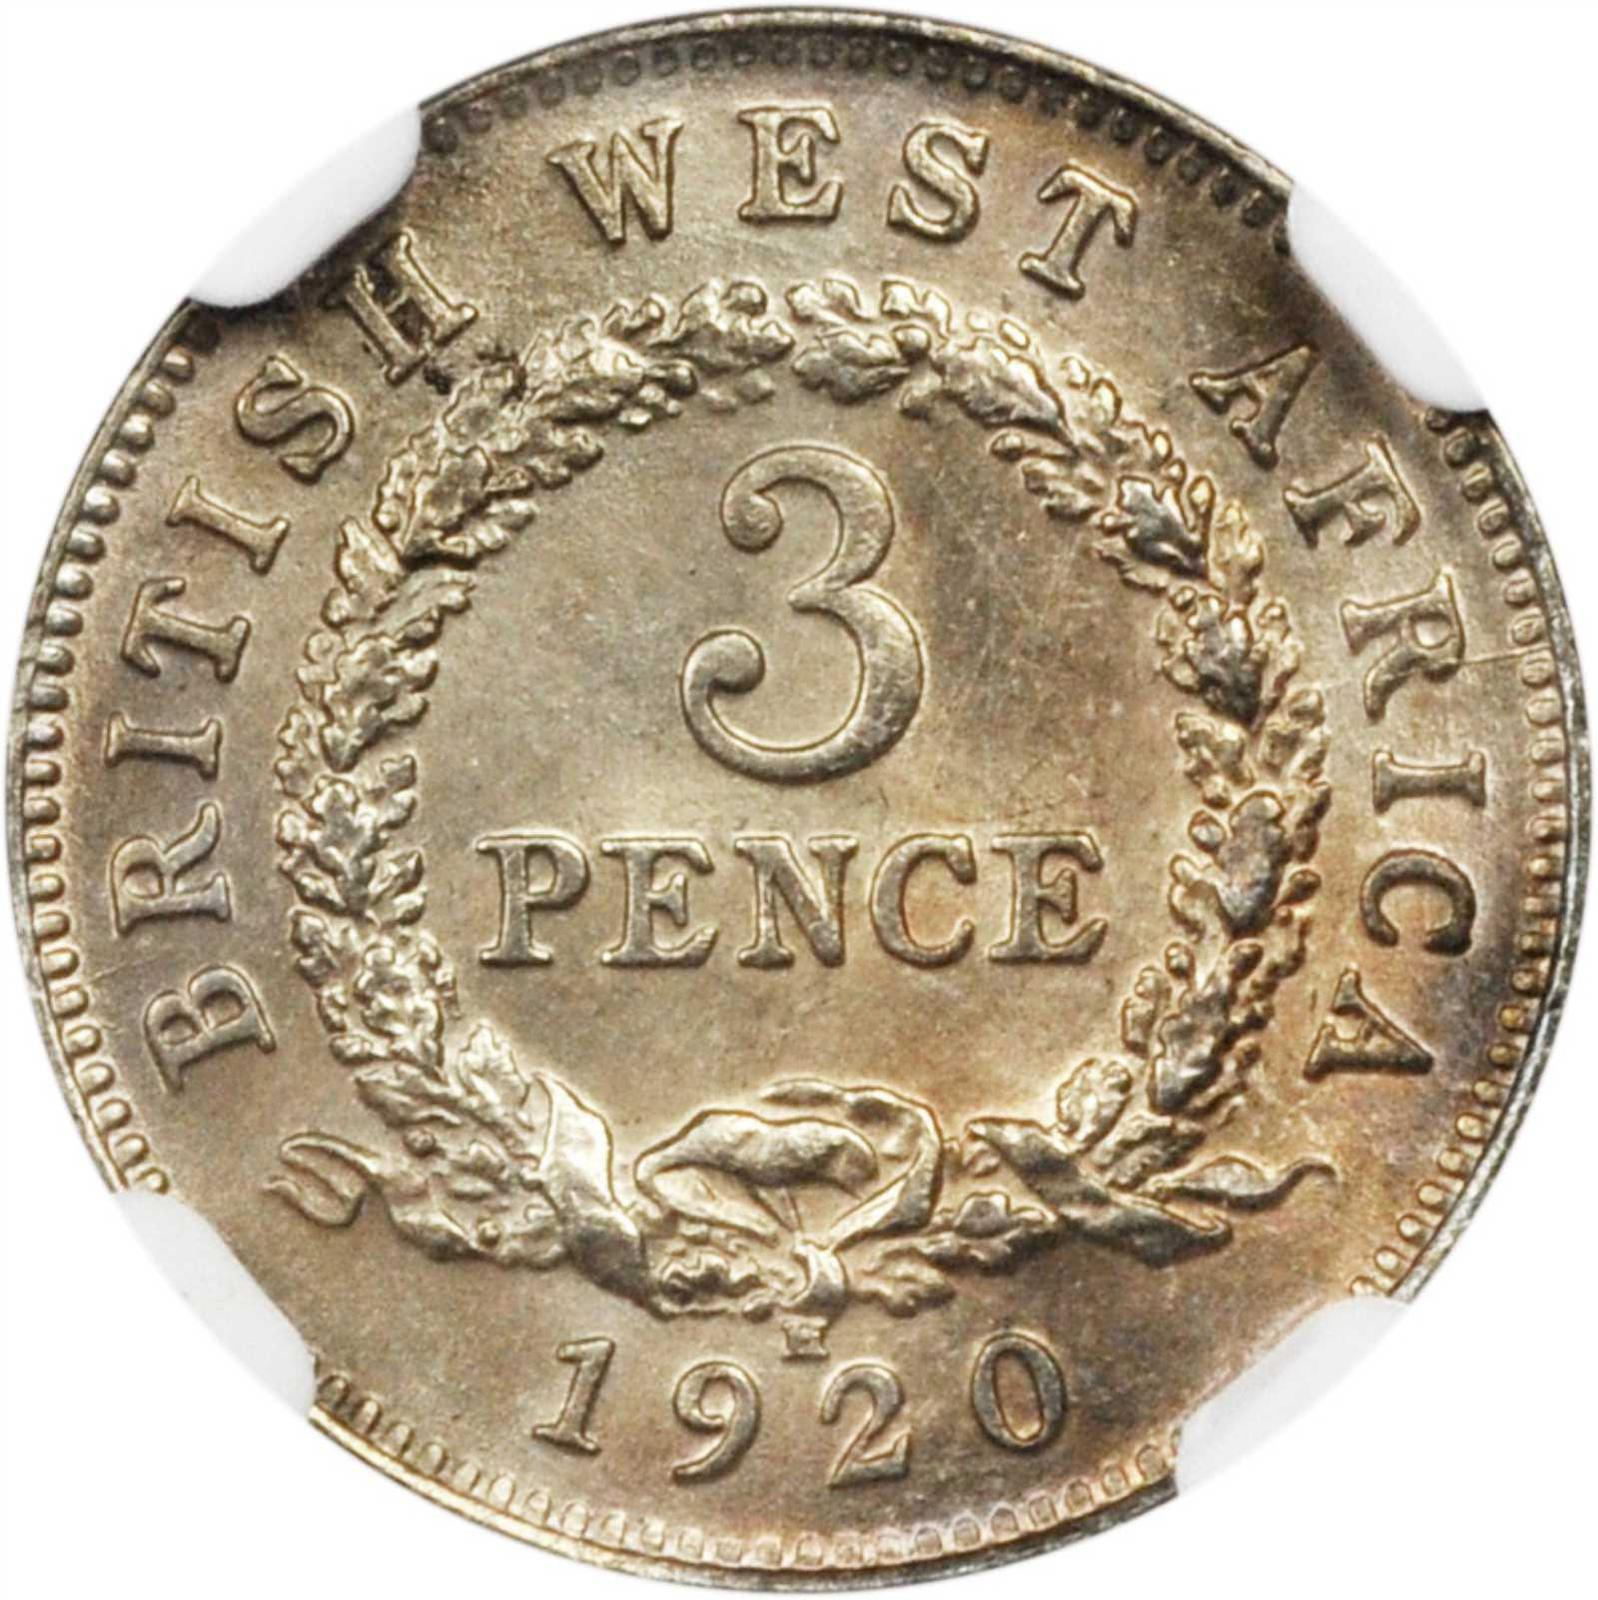 Threepence 1920 (Silver): Photo British West Africa 1920-H 3 pence